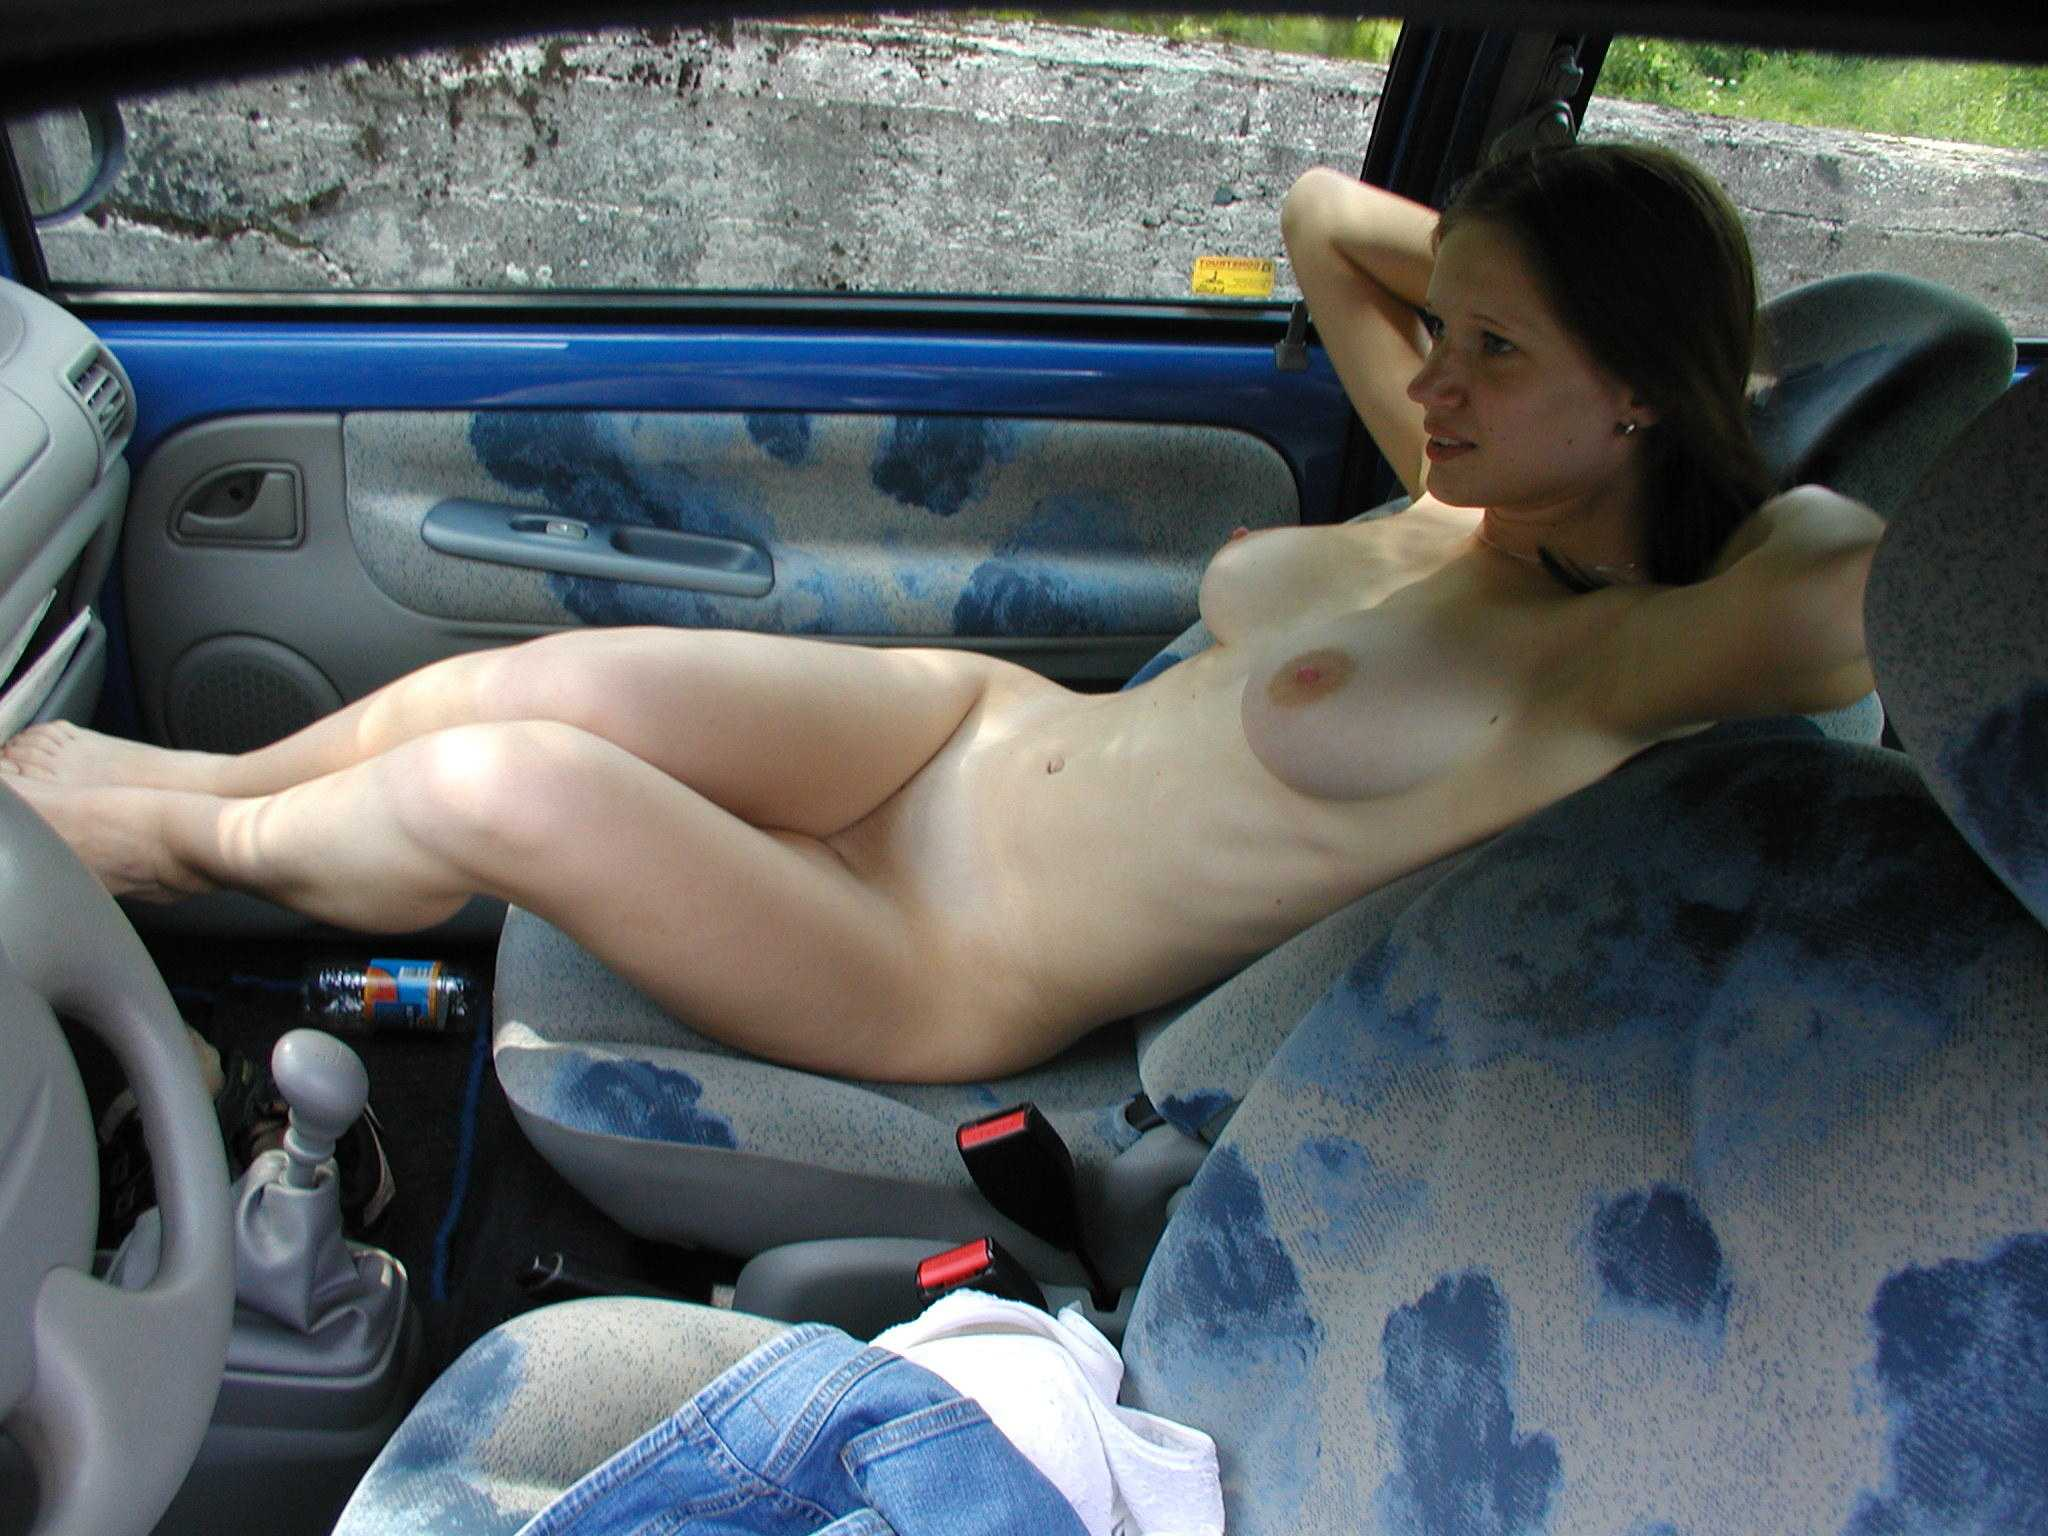 Truck back seat girls naked can